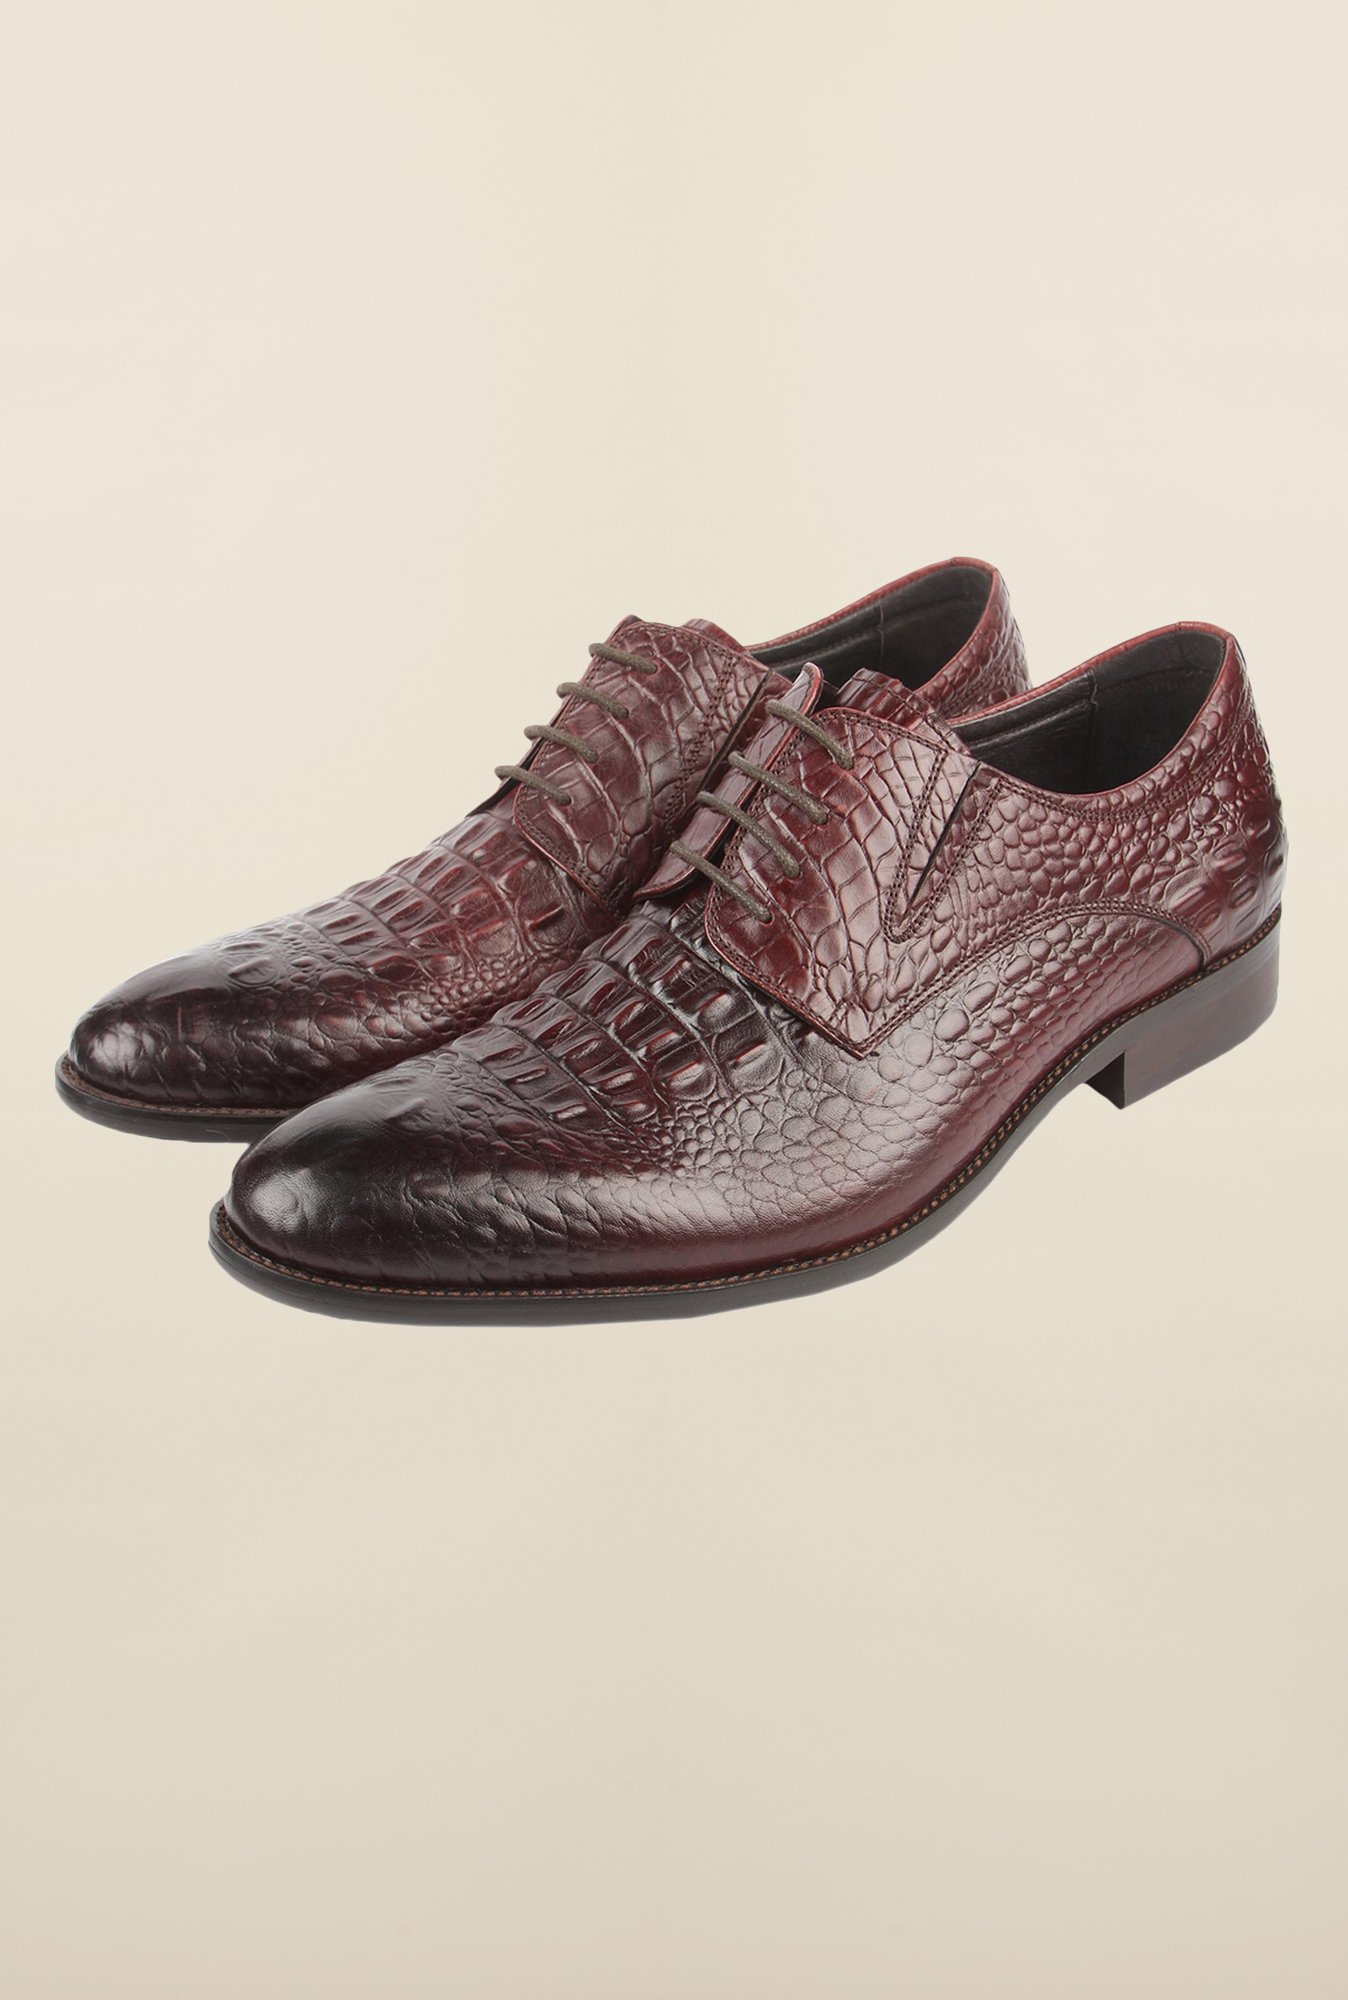 Cobblerz Wine Leather Formal Shoes